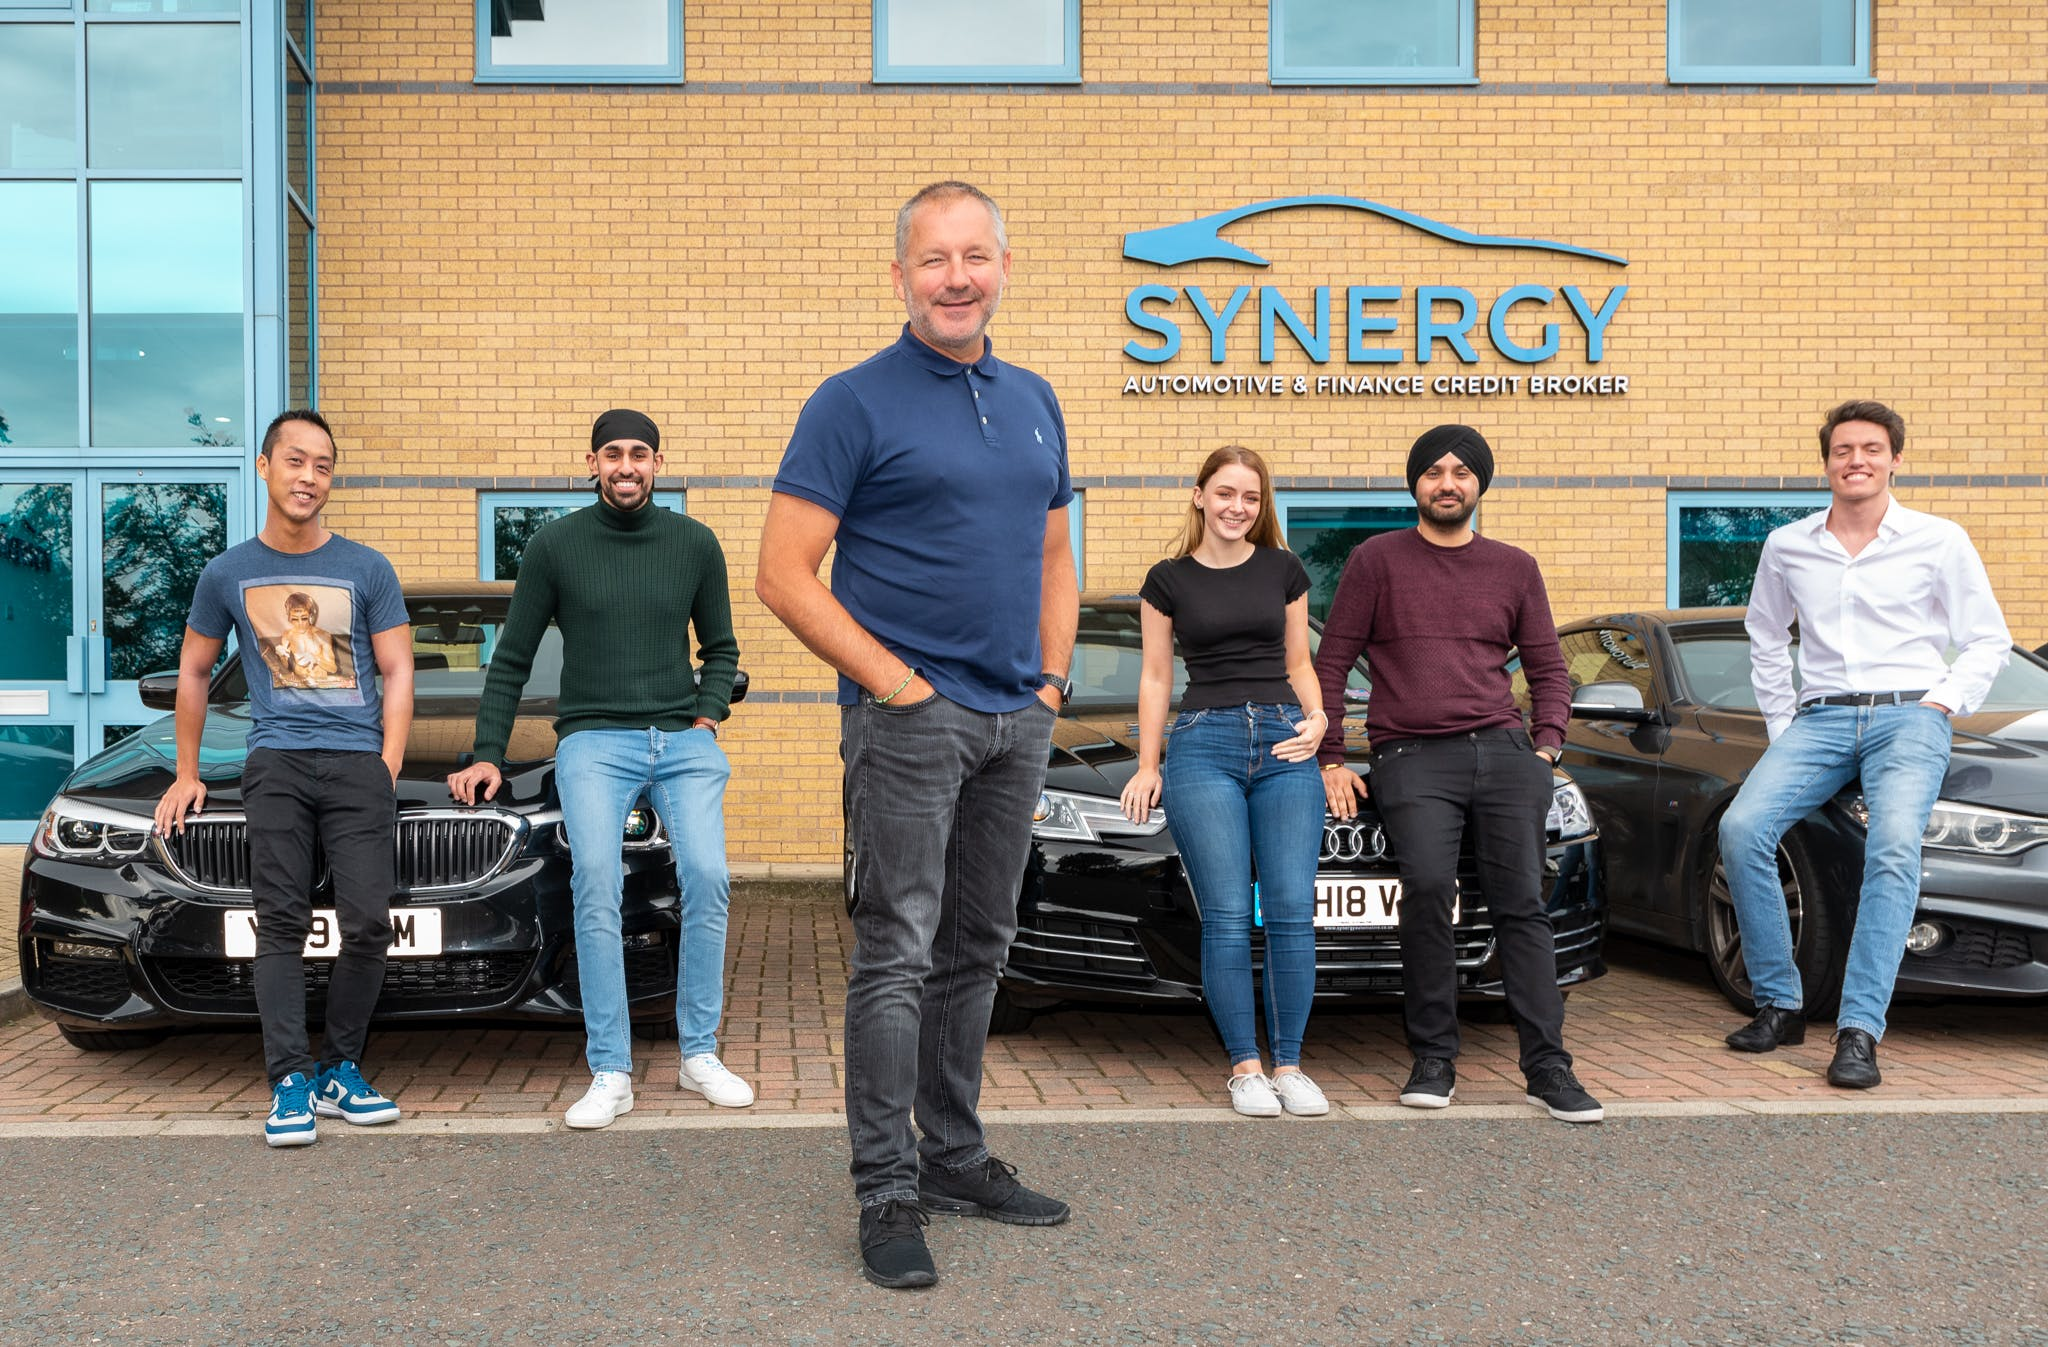 Six members of the Synergy Car Leasing team standing outside their offices.